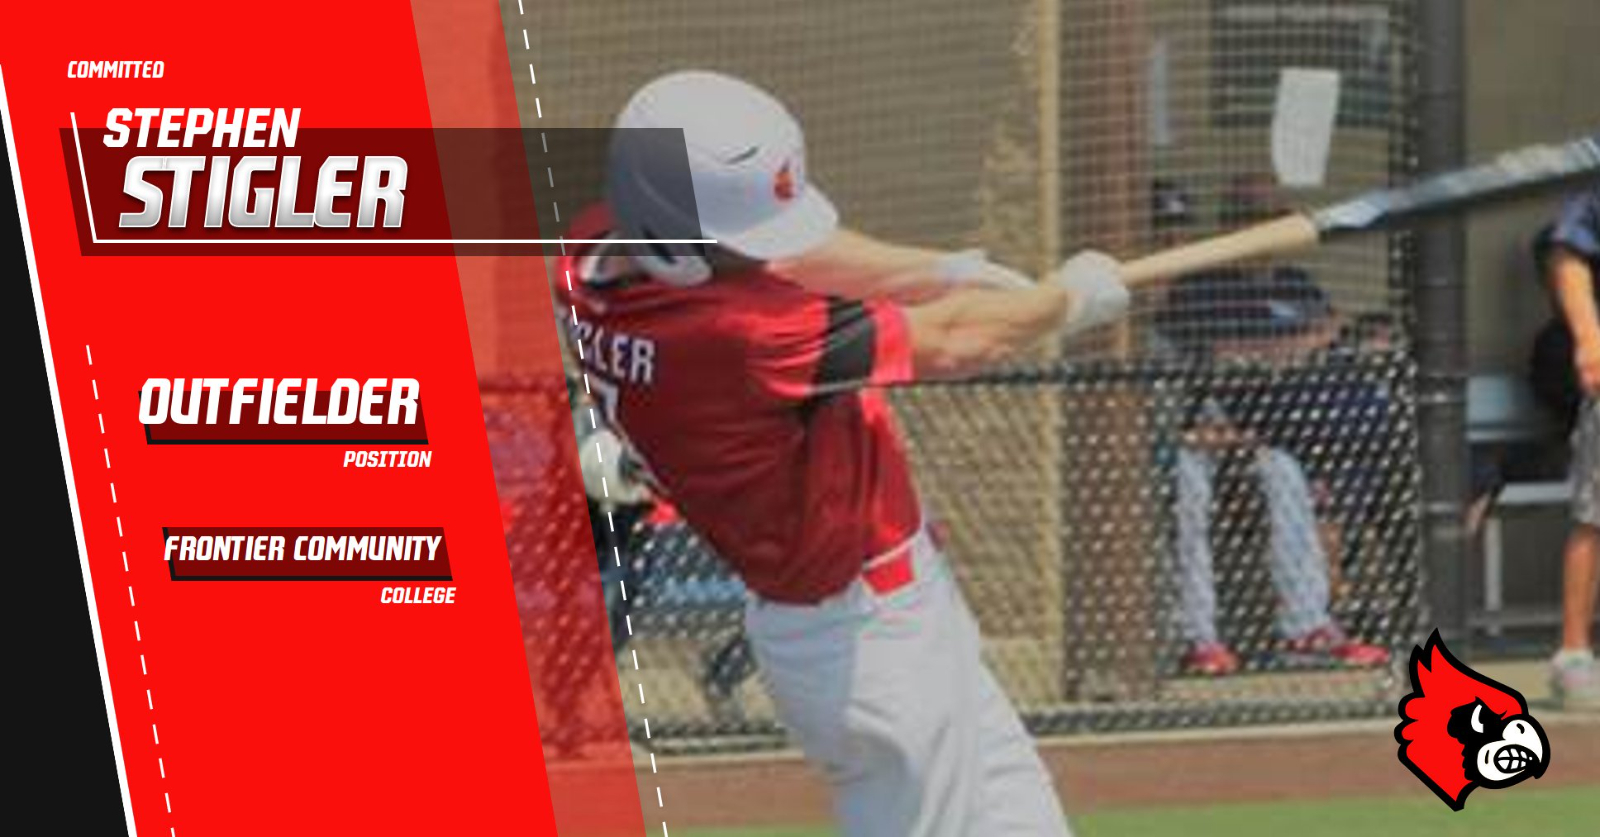 Stigler Signs with Frontier Community College!